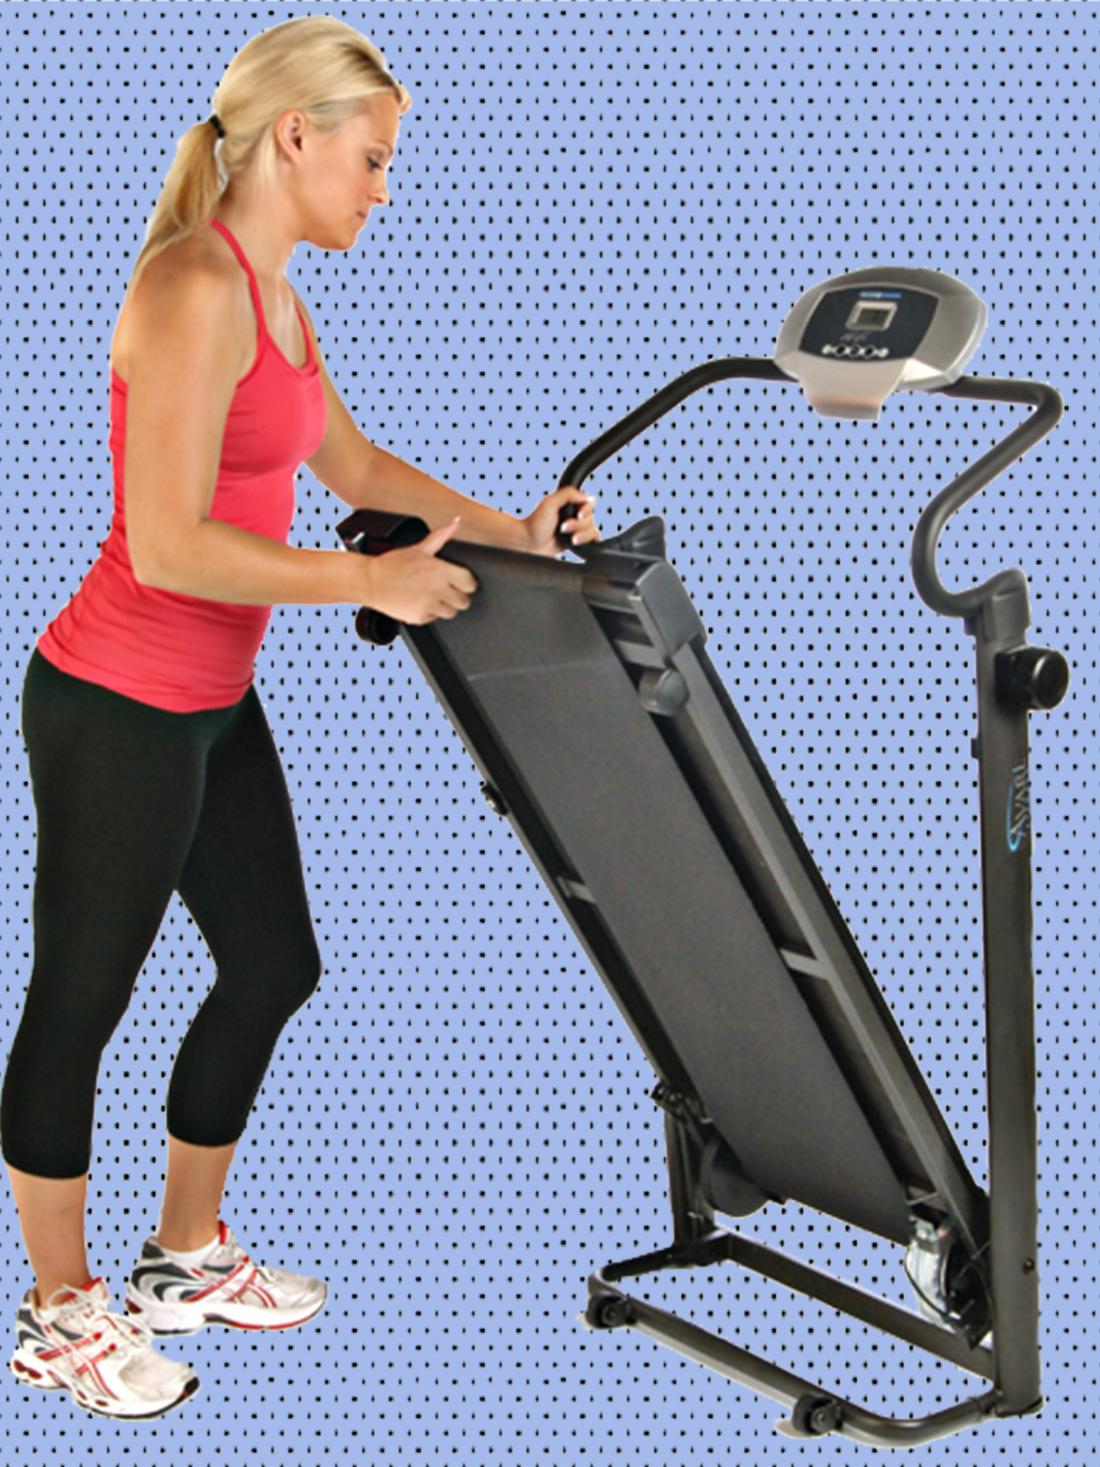 Home Gym Equipment That Won T Take Up A Lot Of Space In Small Apartments